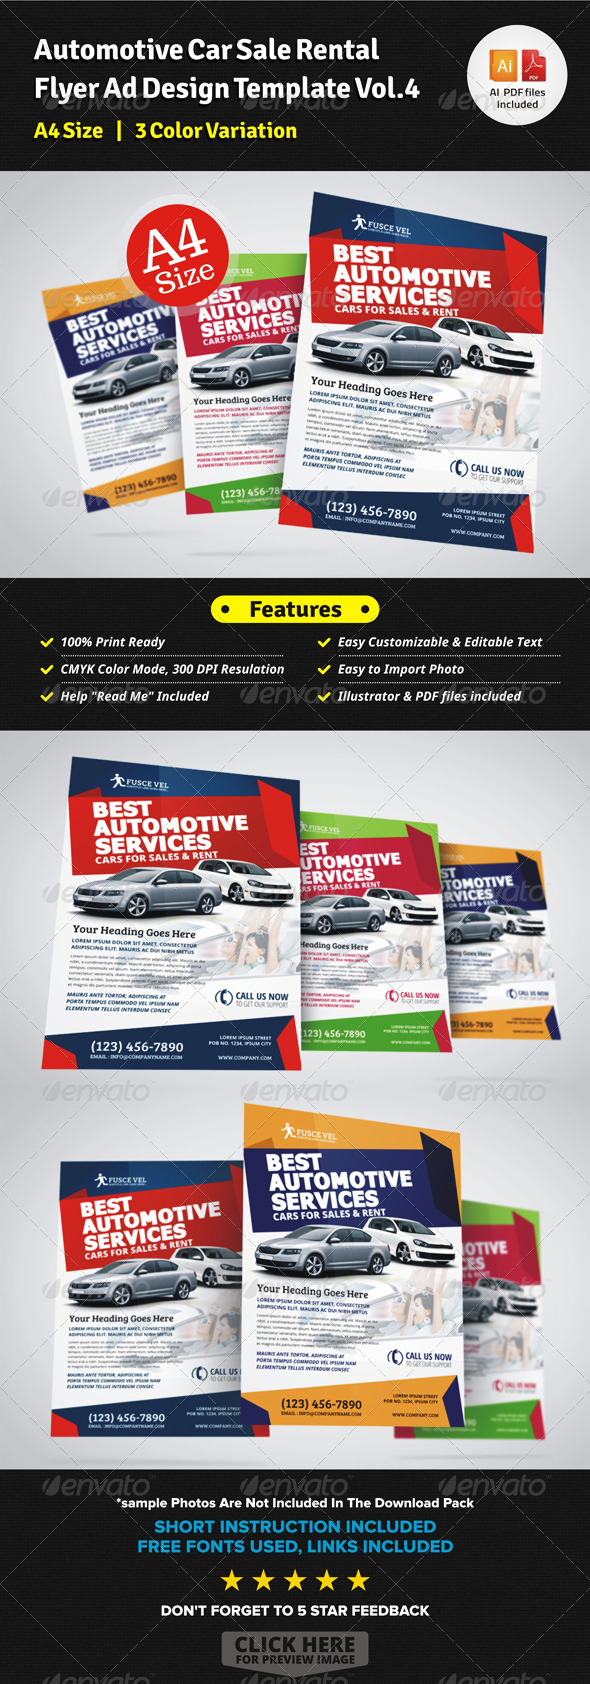 Automotive Car Sale Rental Flyer Ad Template Vol4 by JbnComilla – Car Ad Template